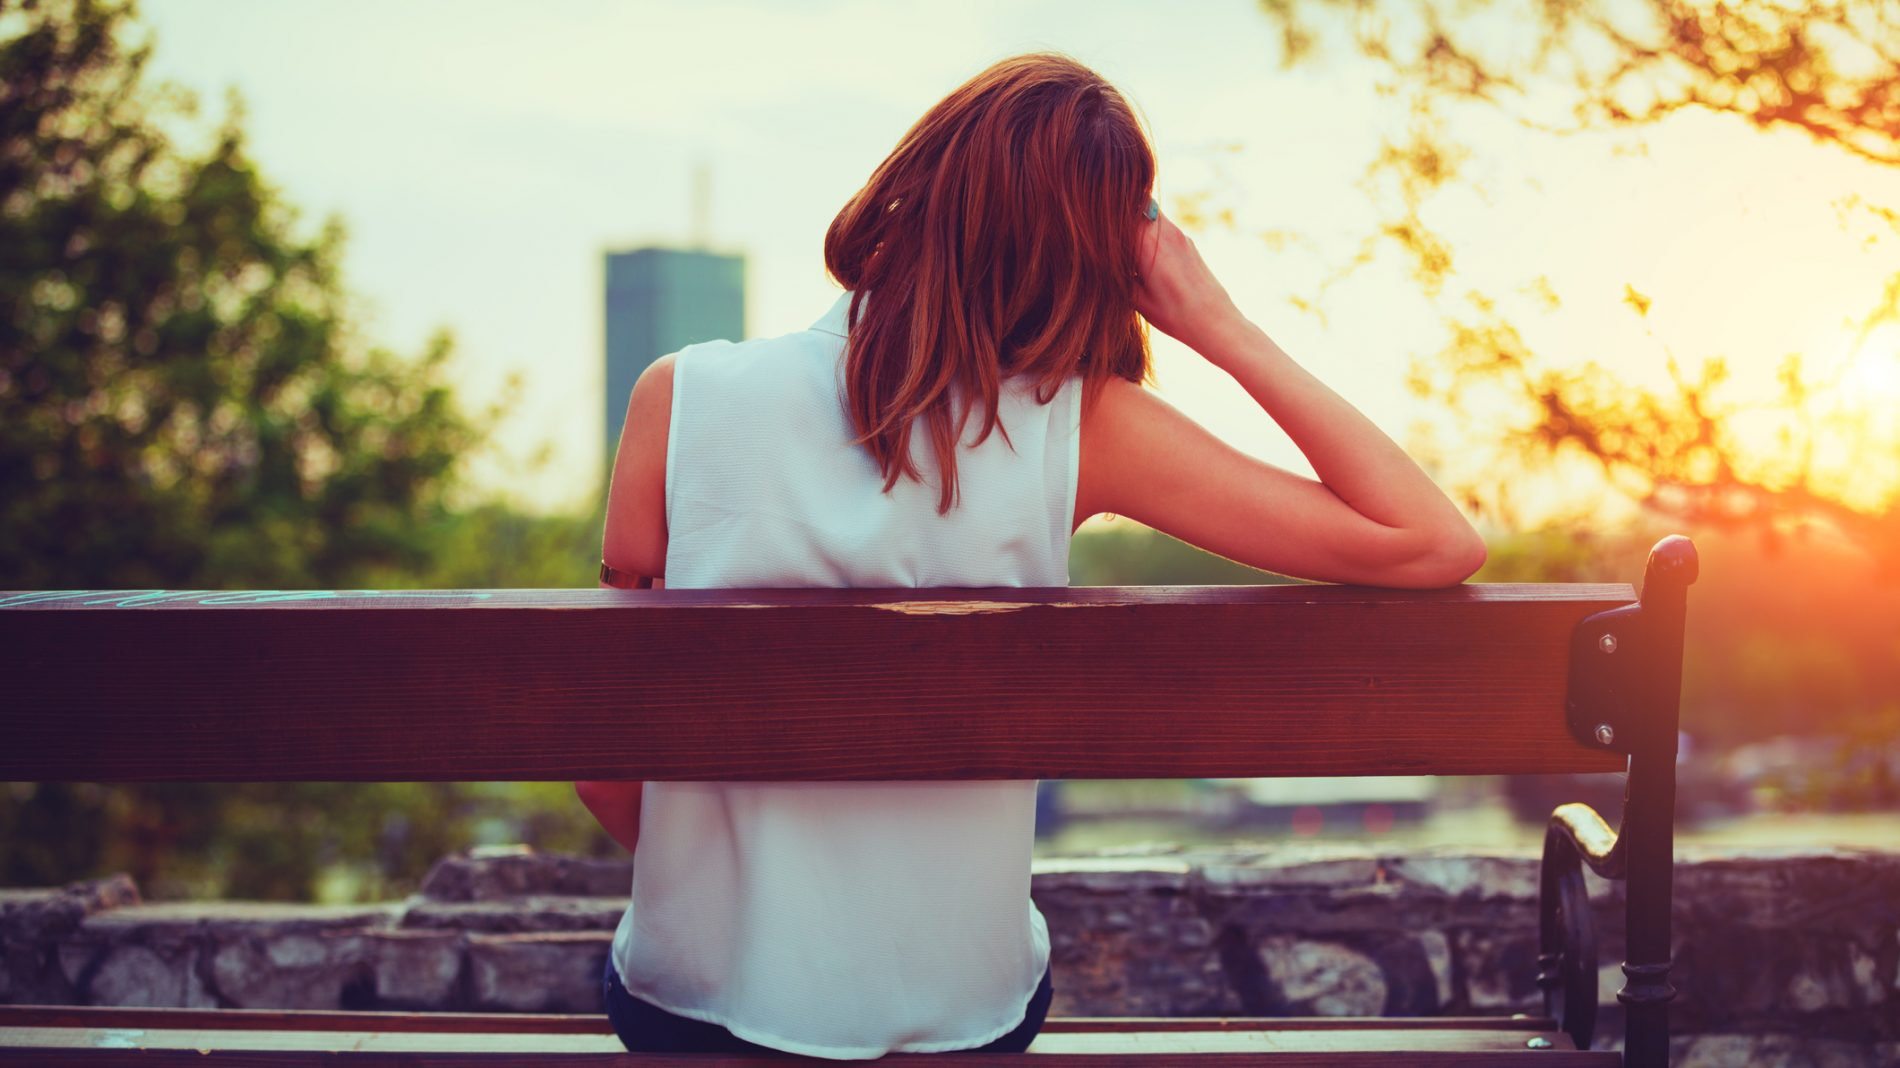 Girl enjoying city view from a bench.